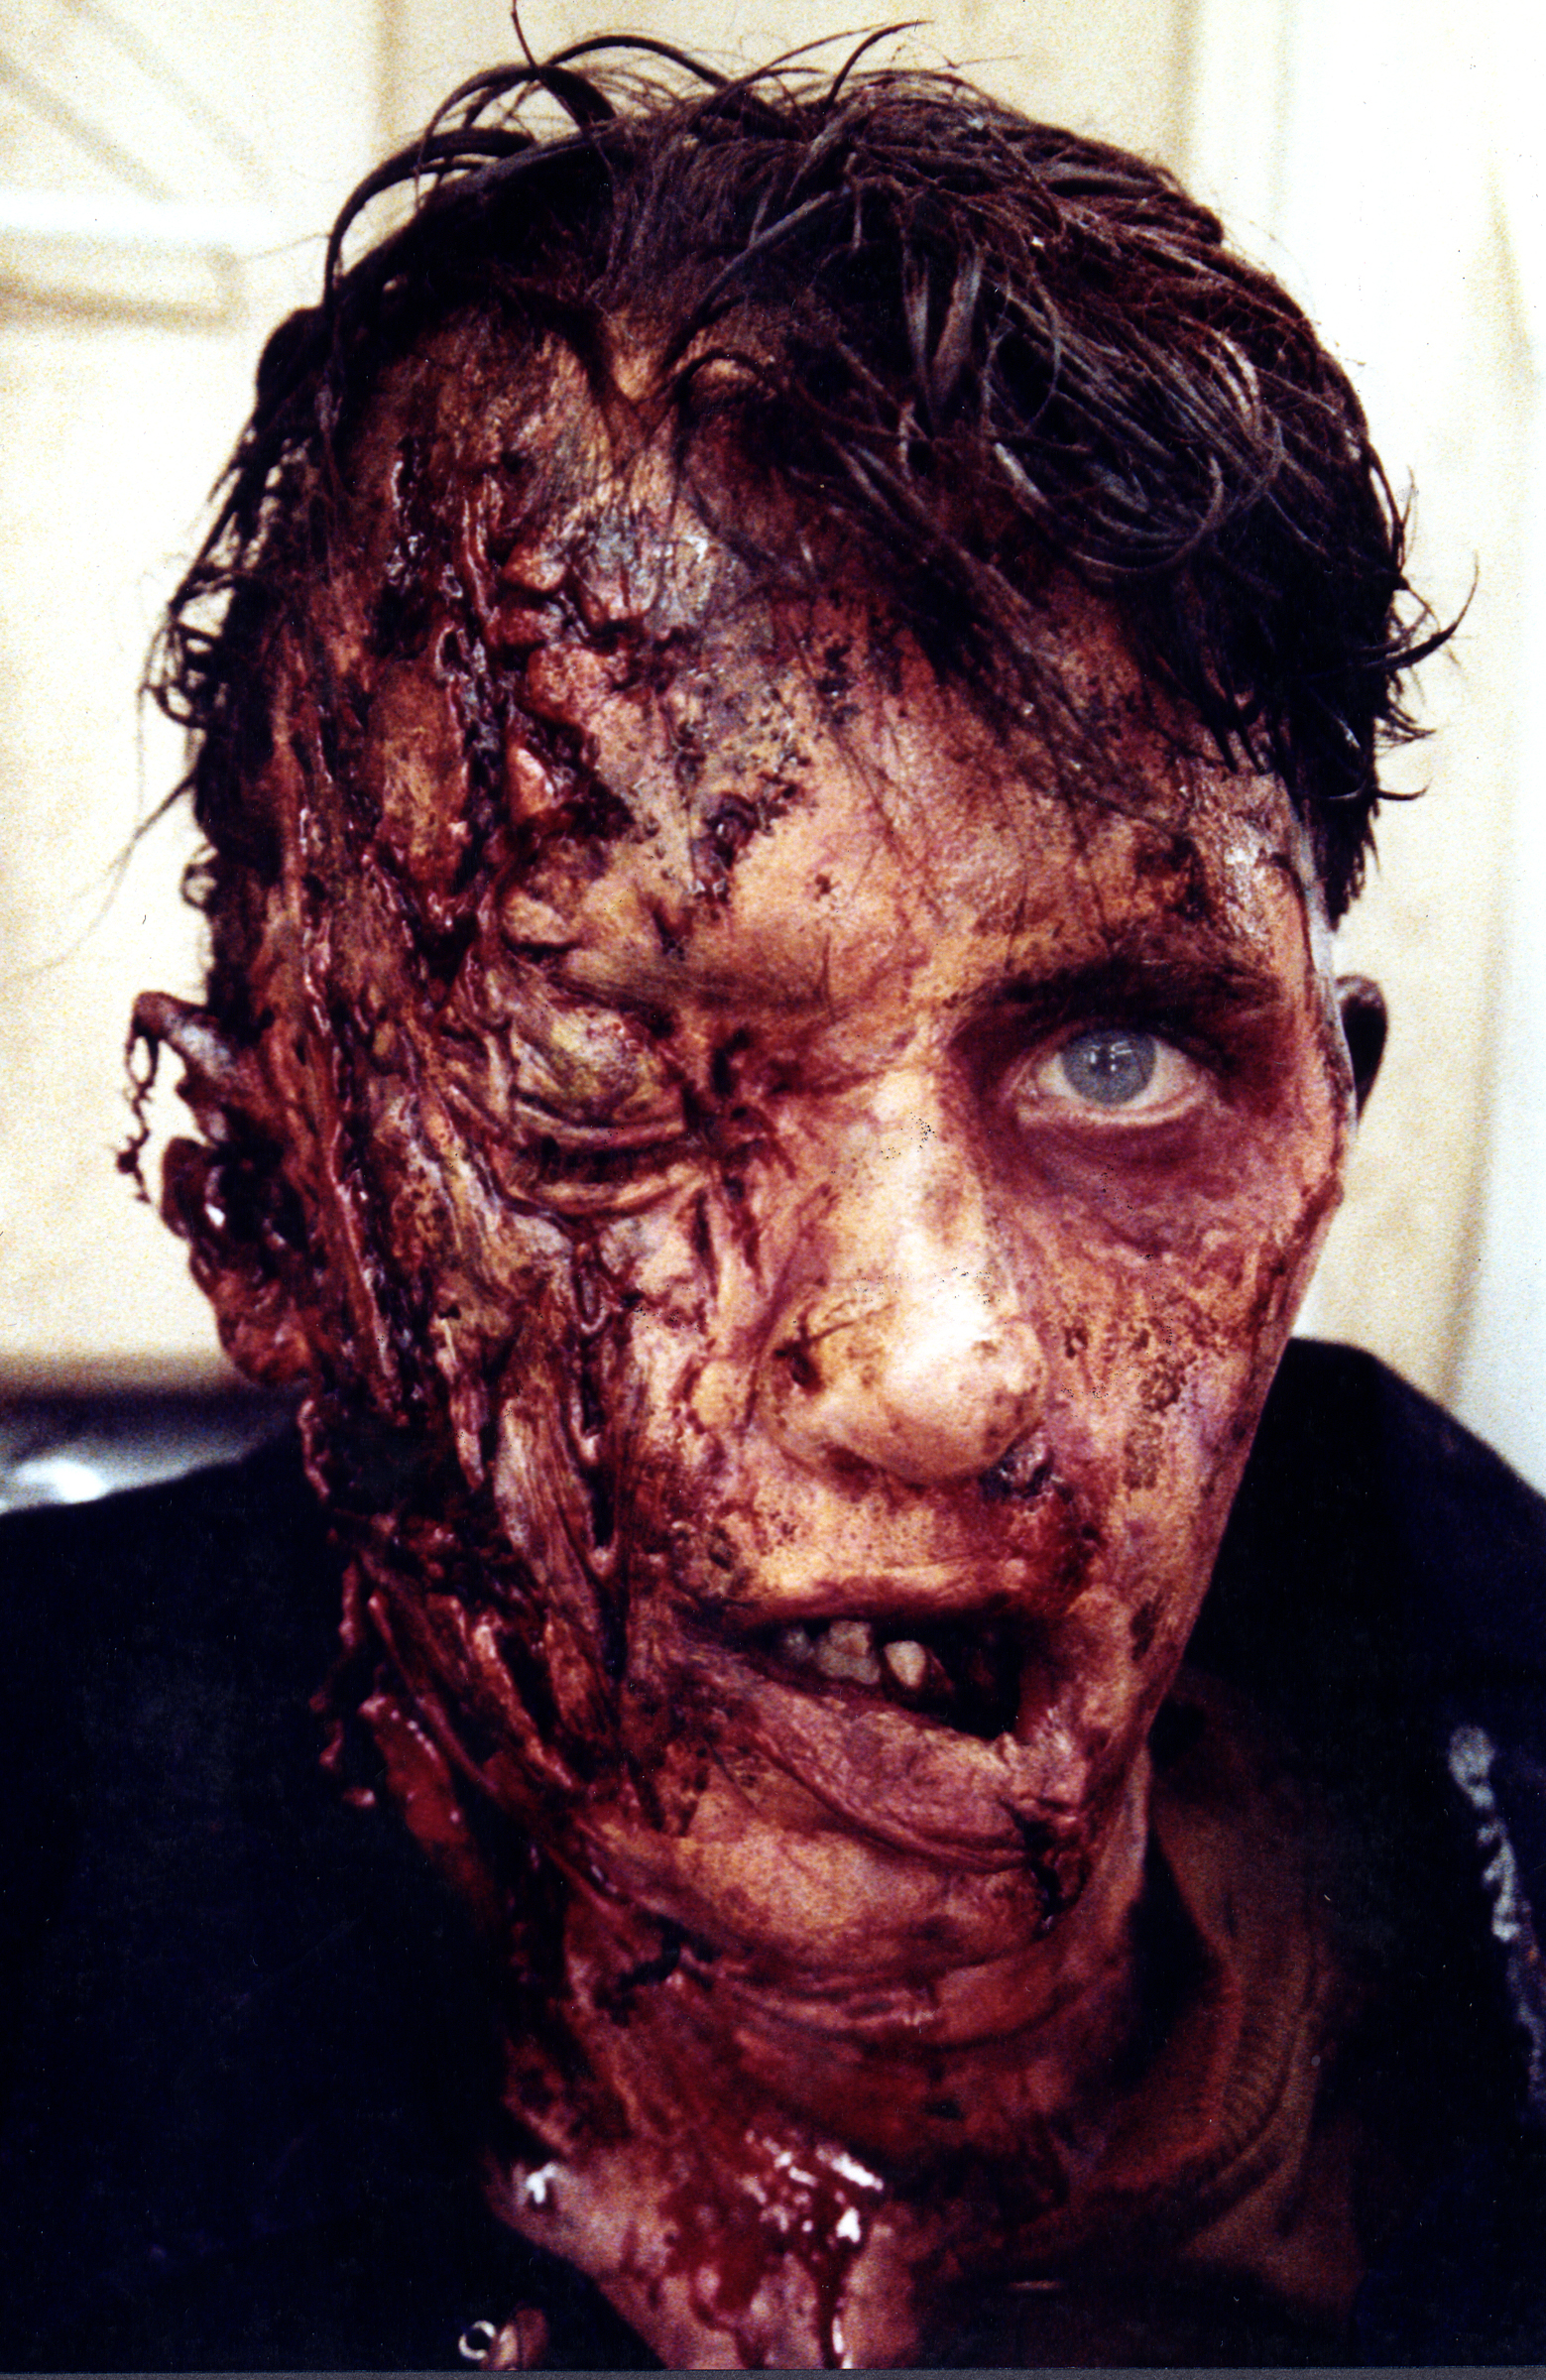 A little something from the way back. Jared Rushton in Pet Semetary 2.... Makeup created at the old Wheatland XFX shop. Applied by David Barton and myself.